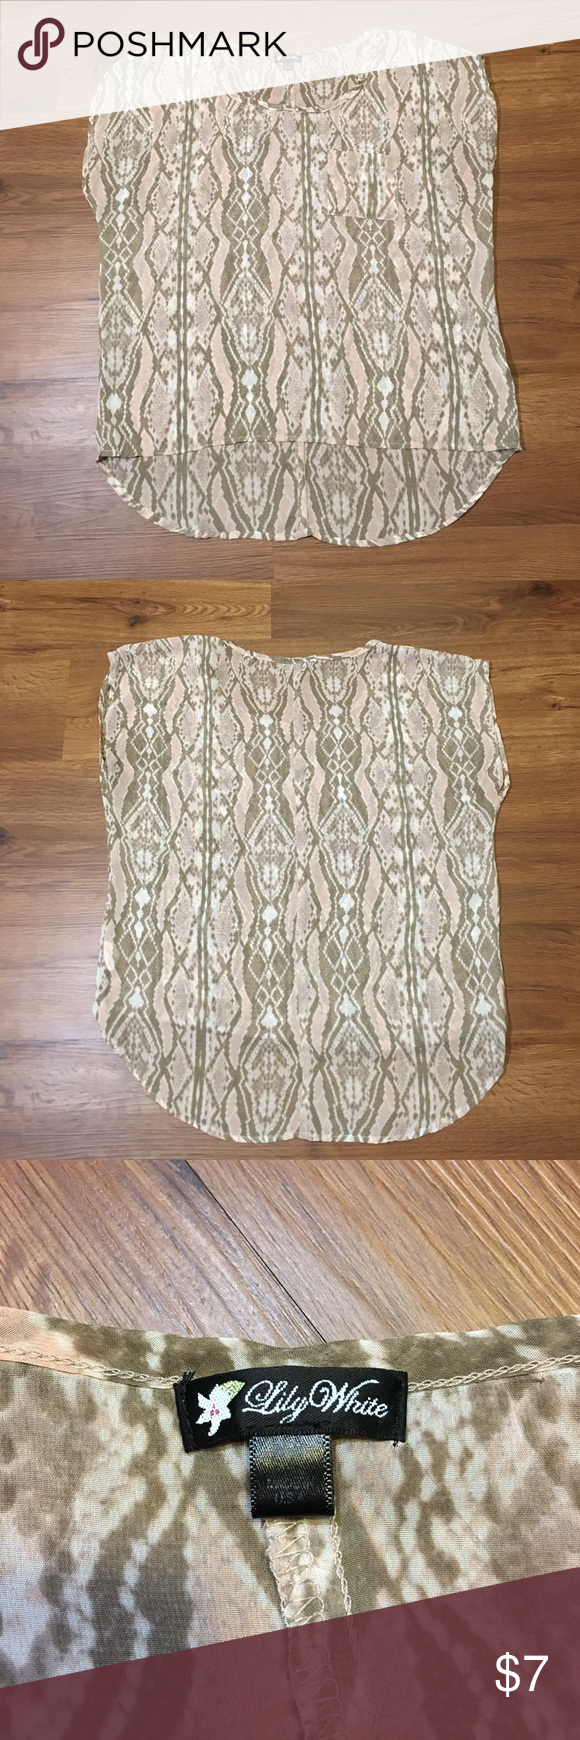 Lily white top A cute sheer Lily White top, perfect for spring and summer Lily White Tops Blouses